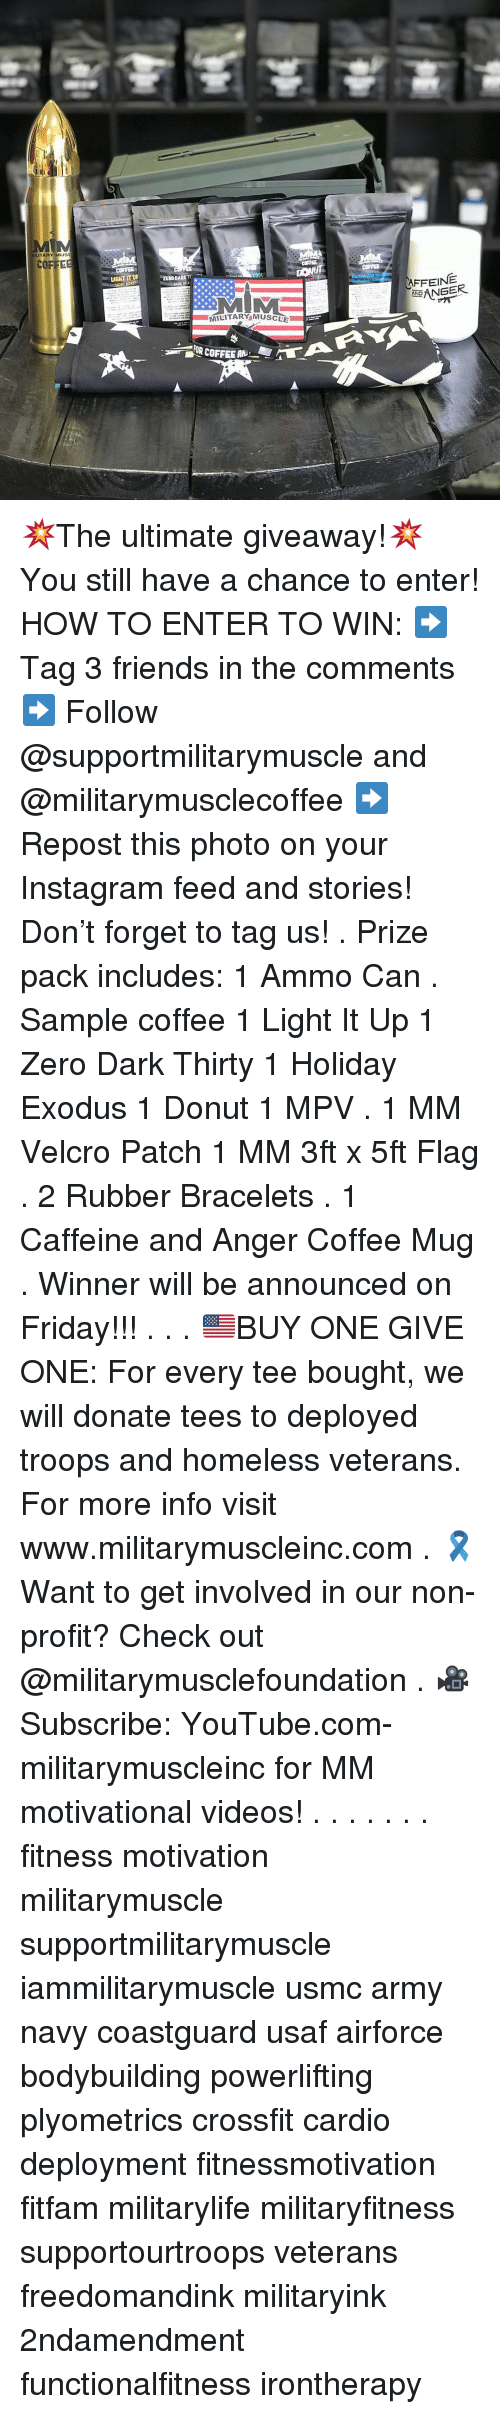 Friday, Friends, and Homeless: LITARY MUS  COFFE  COFFIE  LIGHT IT UF  LIGHT ROAST  COFFEE  FFEINE  OR COFFEE AN 💥The ultimate giveaway!💥 You still have a chance to enter! HOW TO ENTER TO WIN: ➡️ Tag 3 friends in the comments ➡️ Follow @supportmilitarymuscle and @militarymusclecoffee ➡️ Repost this photo on your Instagram feed and stories! Don't forget to tag us! . Prize pack includes: 1 Ammo Can . Sample coffee 1 Light It Up 1 Zero Dark Thirty 1 Holiday Exodus 1 Donut 1 MPV . 1 MM Velcro Patch 1 MM 3ft x 5ft Flag . 2 Rubber Bracelets . 1 Caffeine and Anger Coffee Mug . Winner will be announced on Friday!!! . . . 🇺🇸BUY ONE GIVE ONE: For every tee bought, we will donate tees to deployed troops and homeless veterans. For more info visit www.militarymuscleinc.com . 🎗Want to get involved in our non-profit? Check out @militarymusclefoundation . 🎥Subscribe: YouTube.com-militarymuscleinc for MM motivational videos! . . . . . . . fitness motivation militarymuscle supportmilitarymuscle iammilitarymuscle usmc army navy coastguard usaf airforce bodybuilding powerlifting plyometrics crossfit cardio deployment fitnessmotivation fitfam militarylife militaryfitness supportourtroops veterans freedomandink militaryink 2ndamendment functionalfitness irontherapy